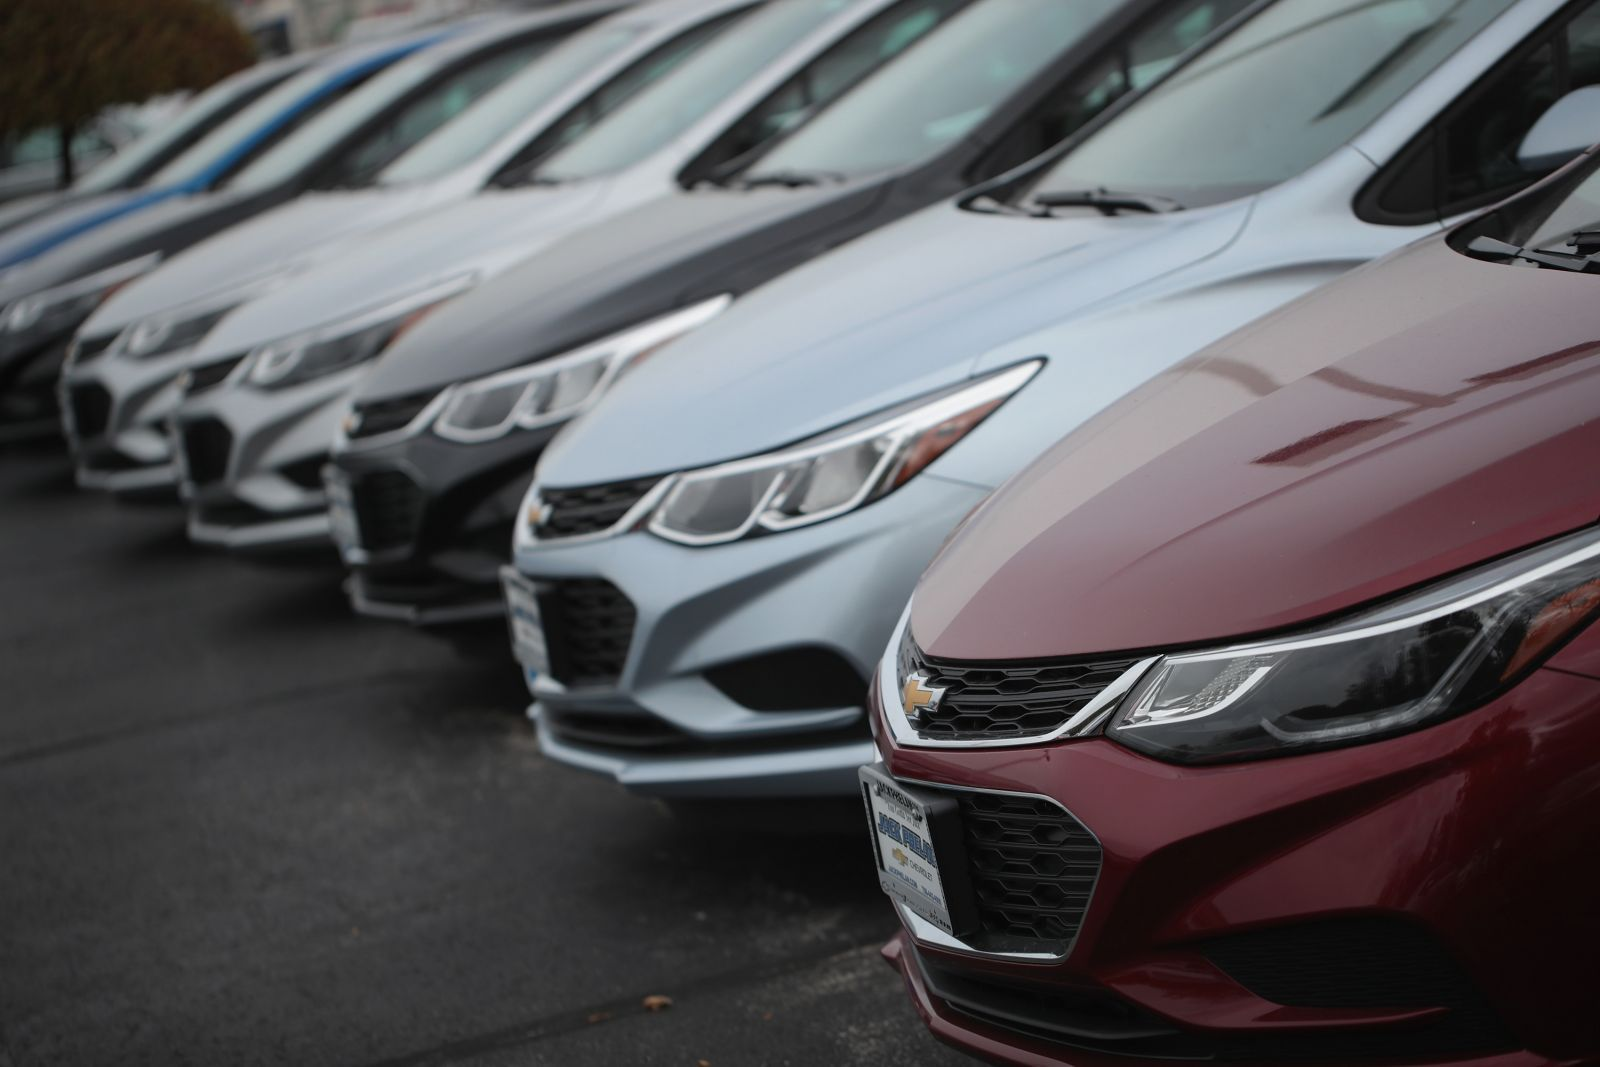 Australia new vehicle sales hit a record for 2016: Vfacts, Transport ...